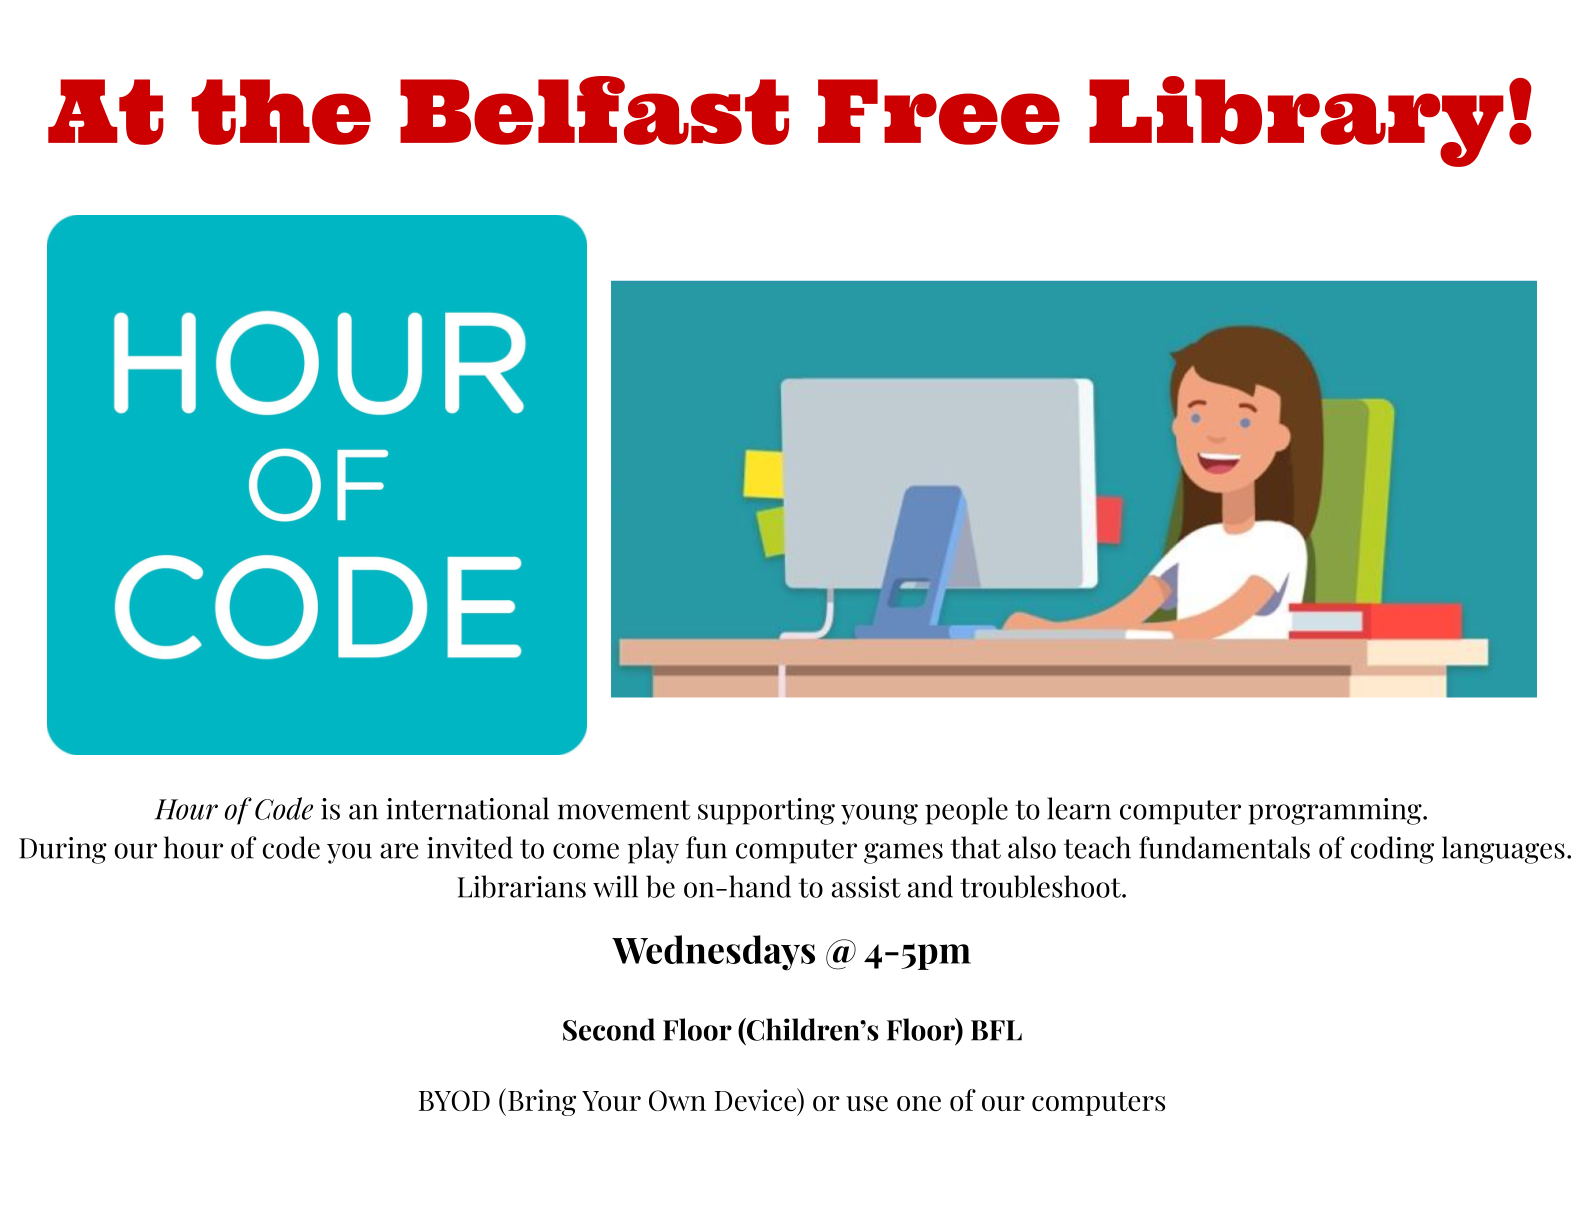 Join us for Hour of Code on Wednesdays from 4-5pm.